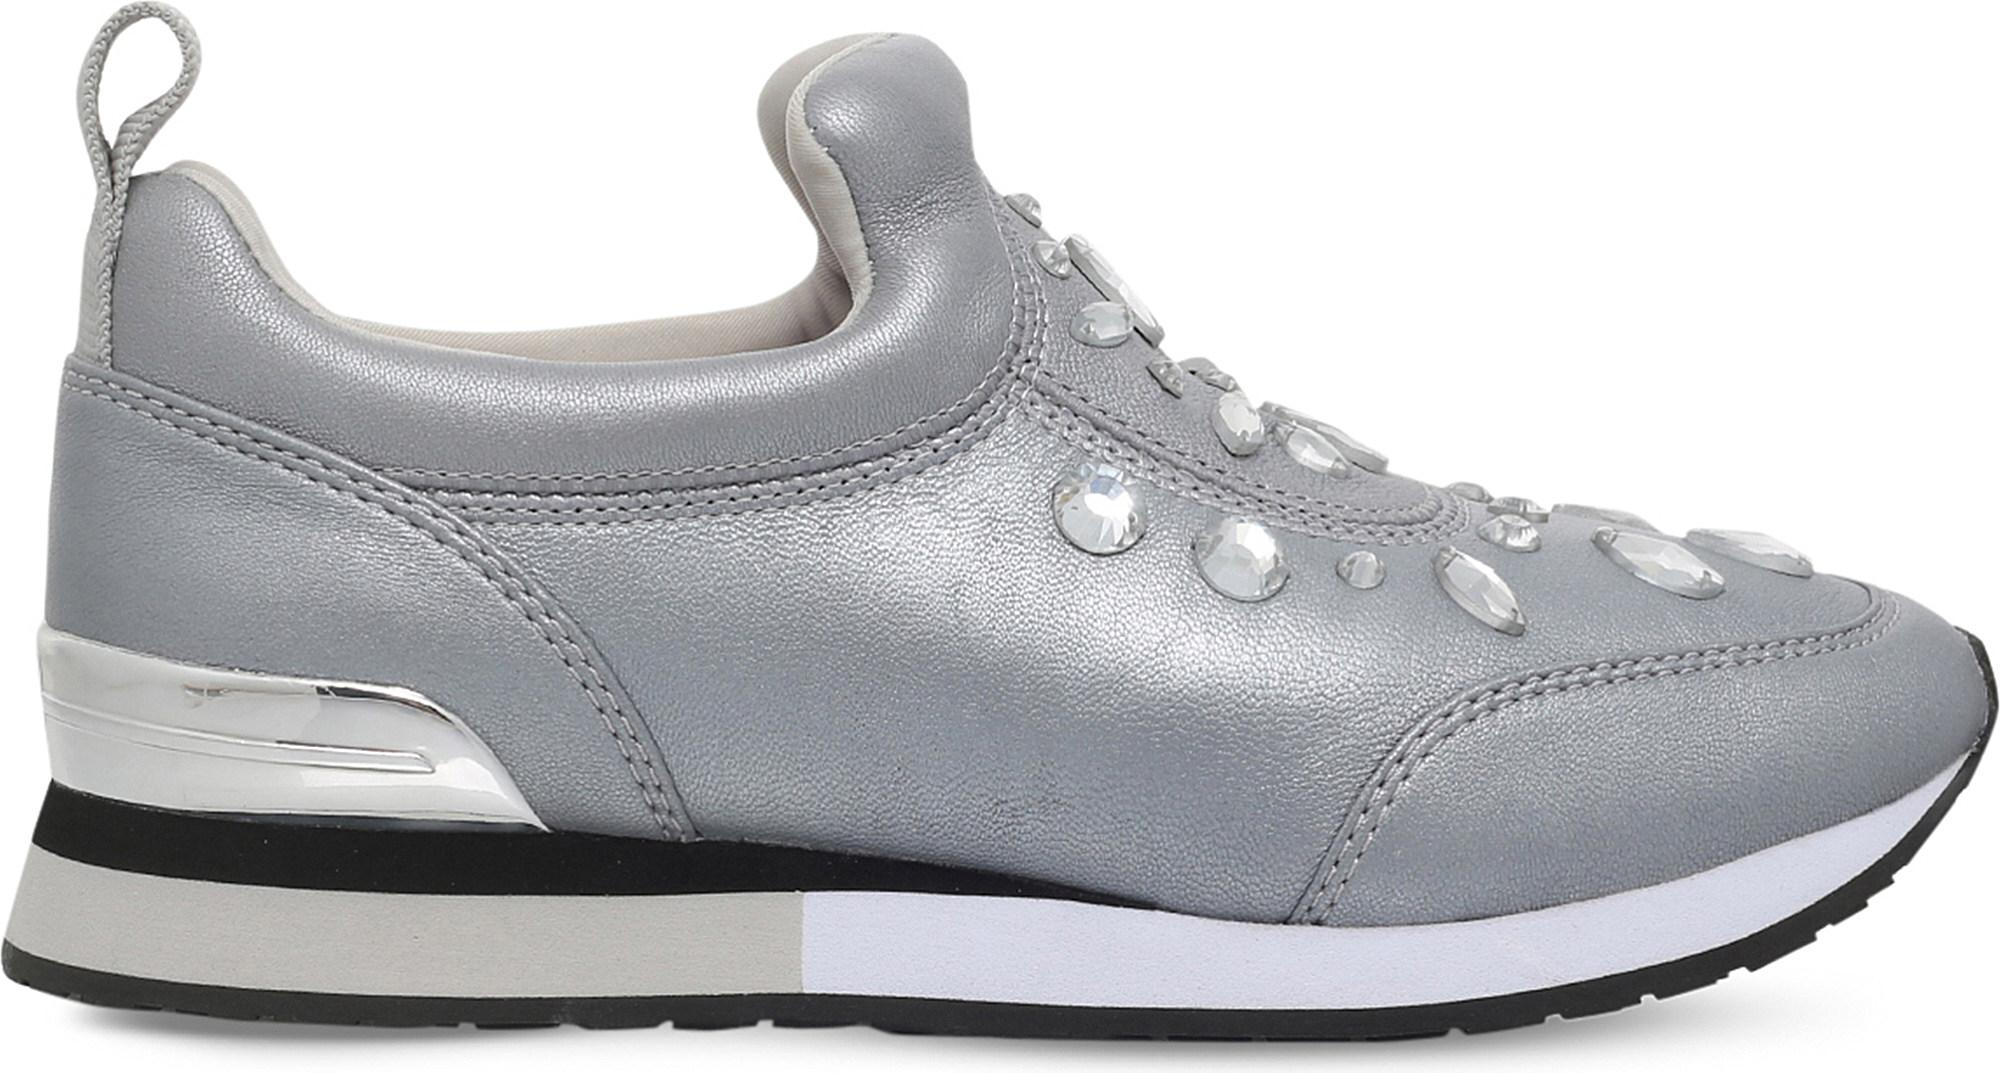 Footlocker Cheap Online Lowest Price For Sale Tory Burch Woman Laney Crystal-embellished Leather Slip-on Sneakers White Size 10 Tory Burch Where To Buy Low Price muC0ma8